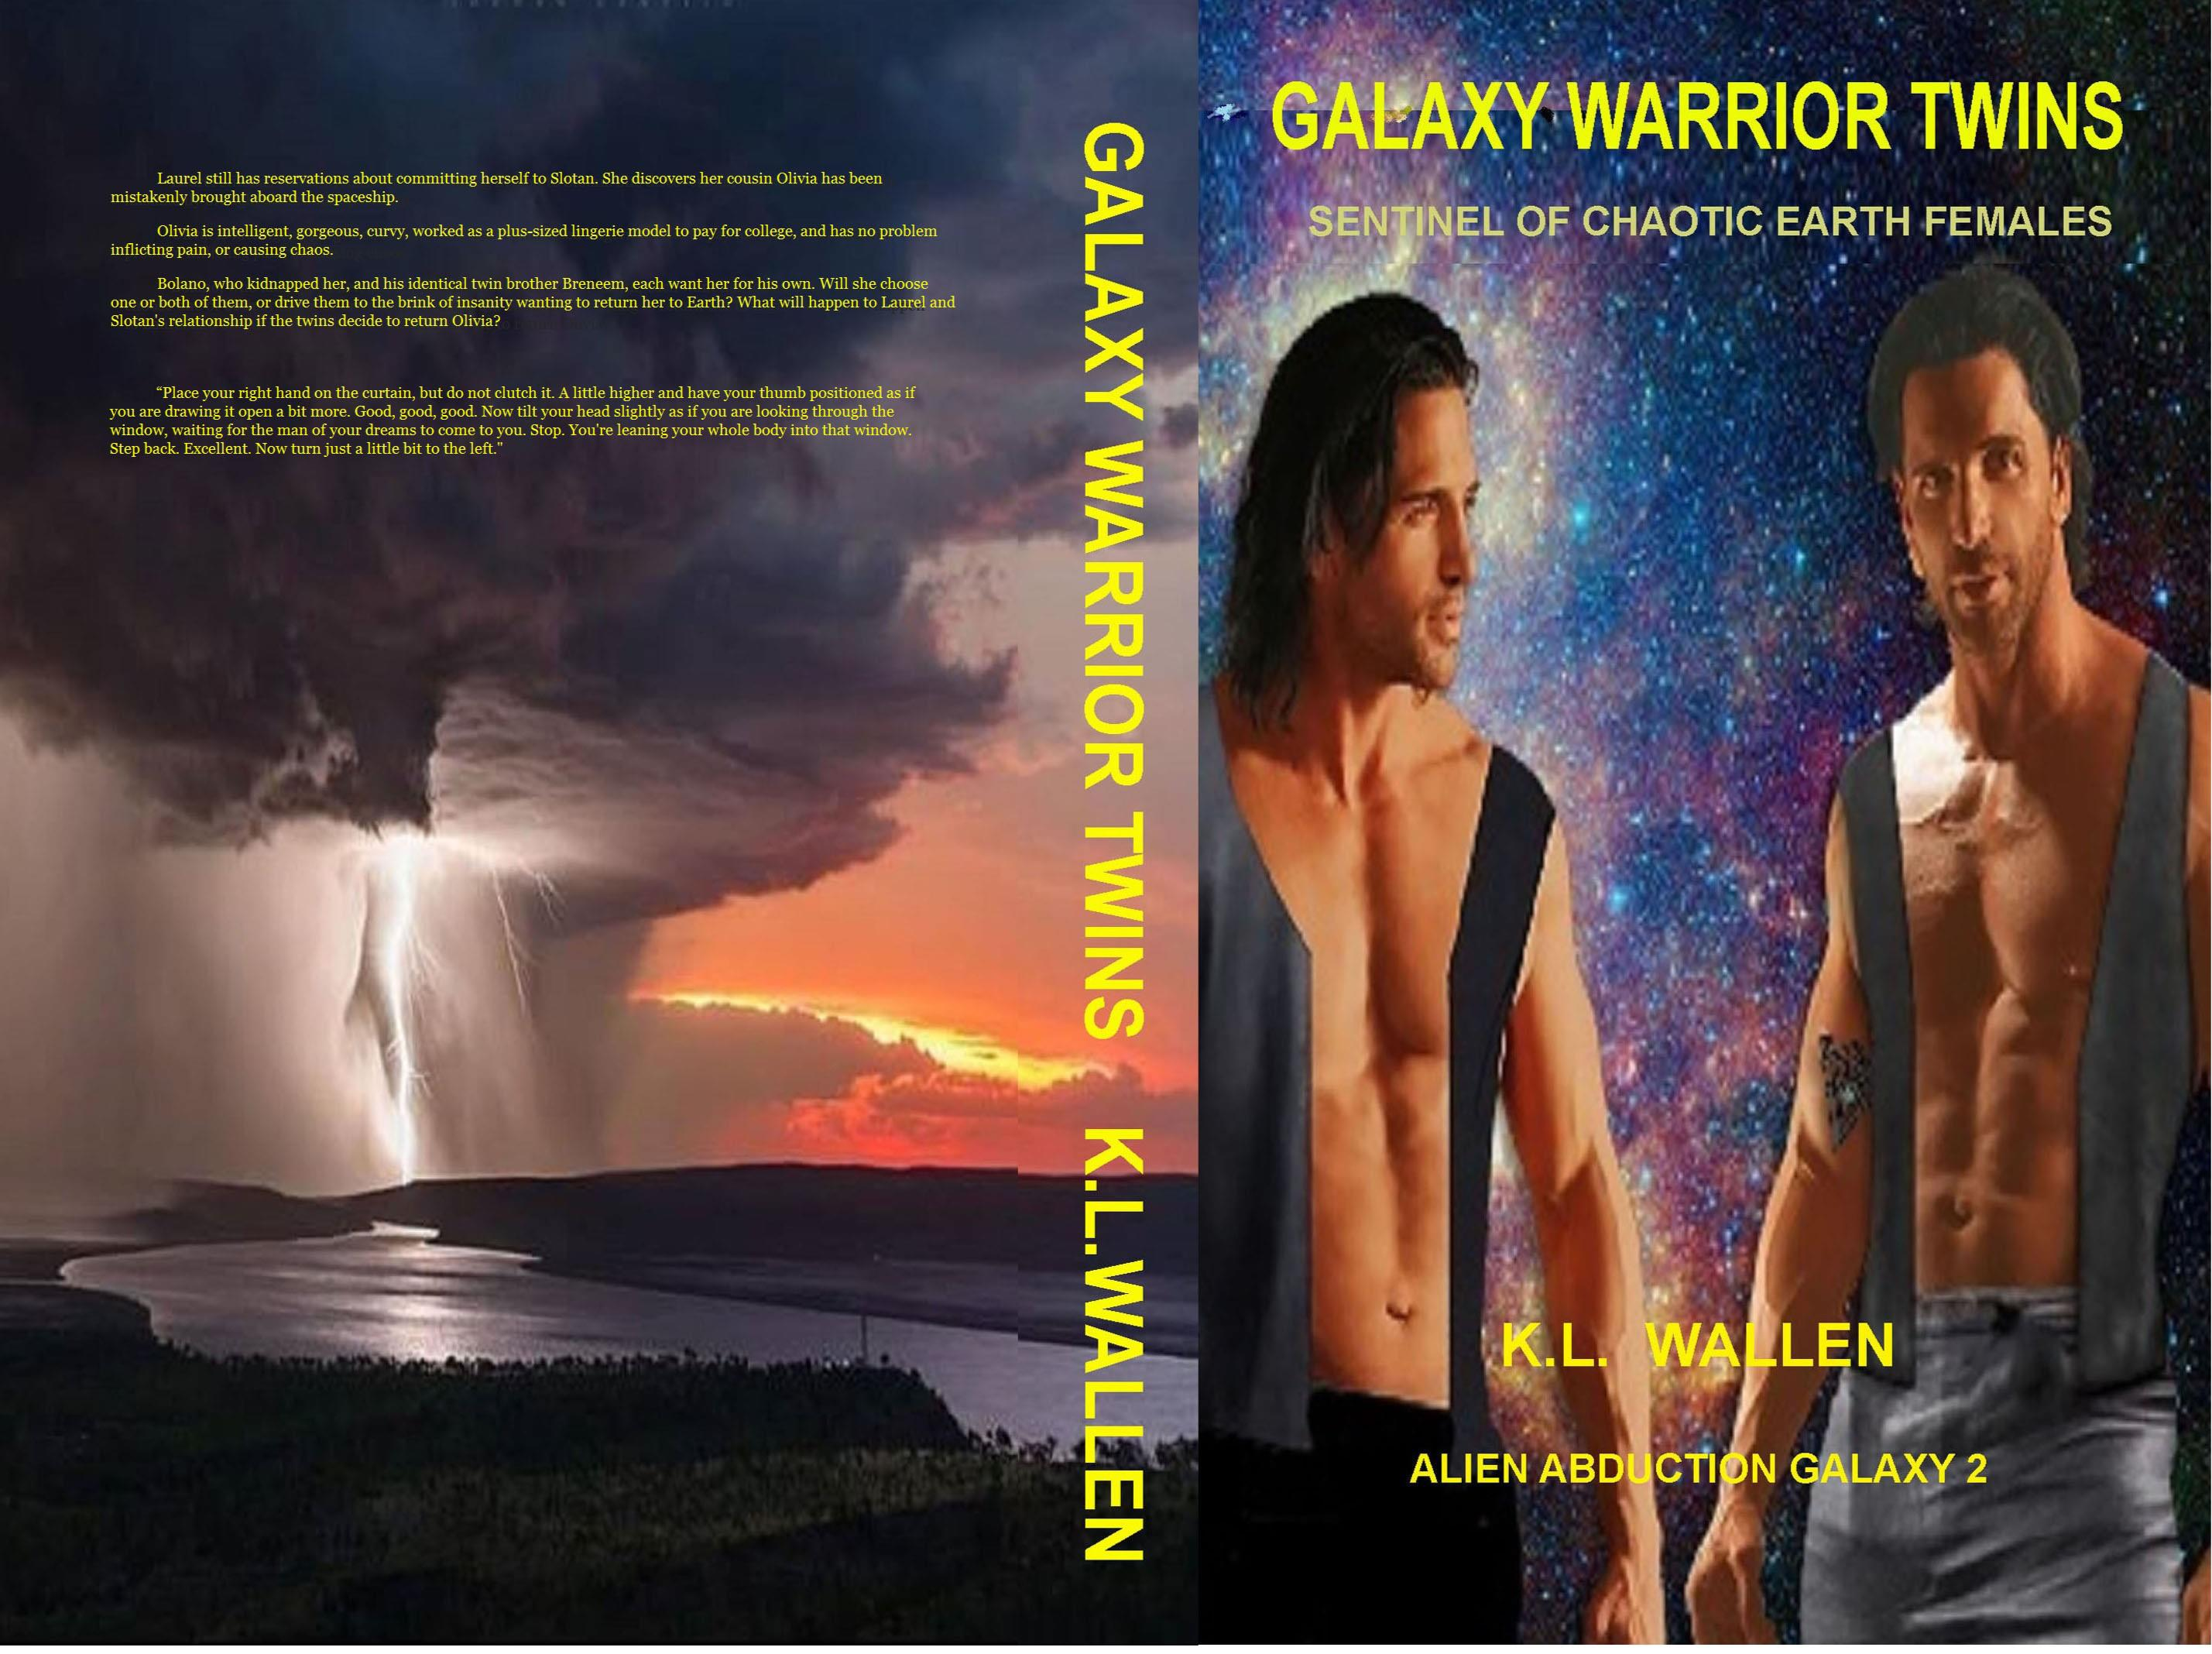 Galaxy Warrior Twins cover image